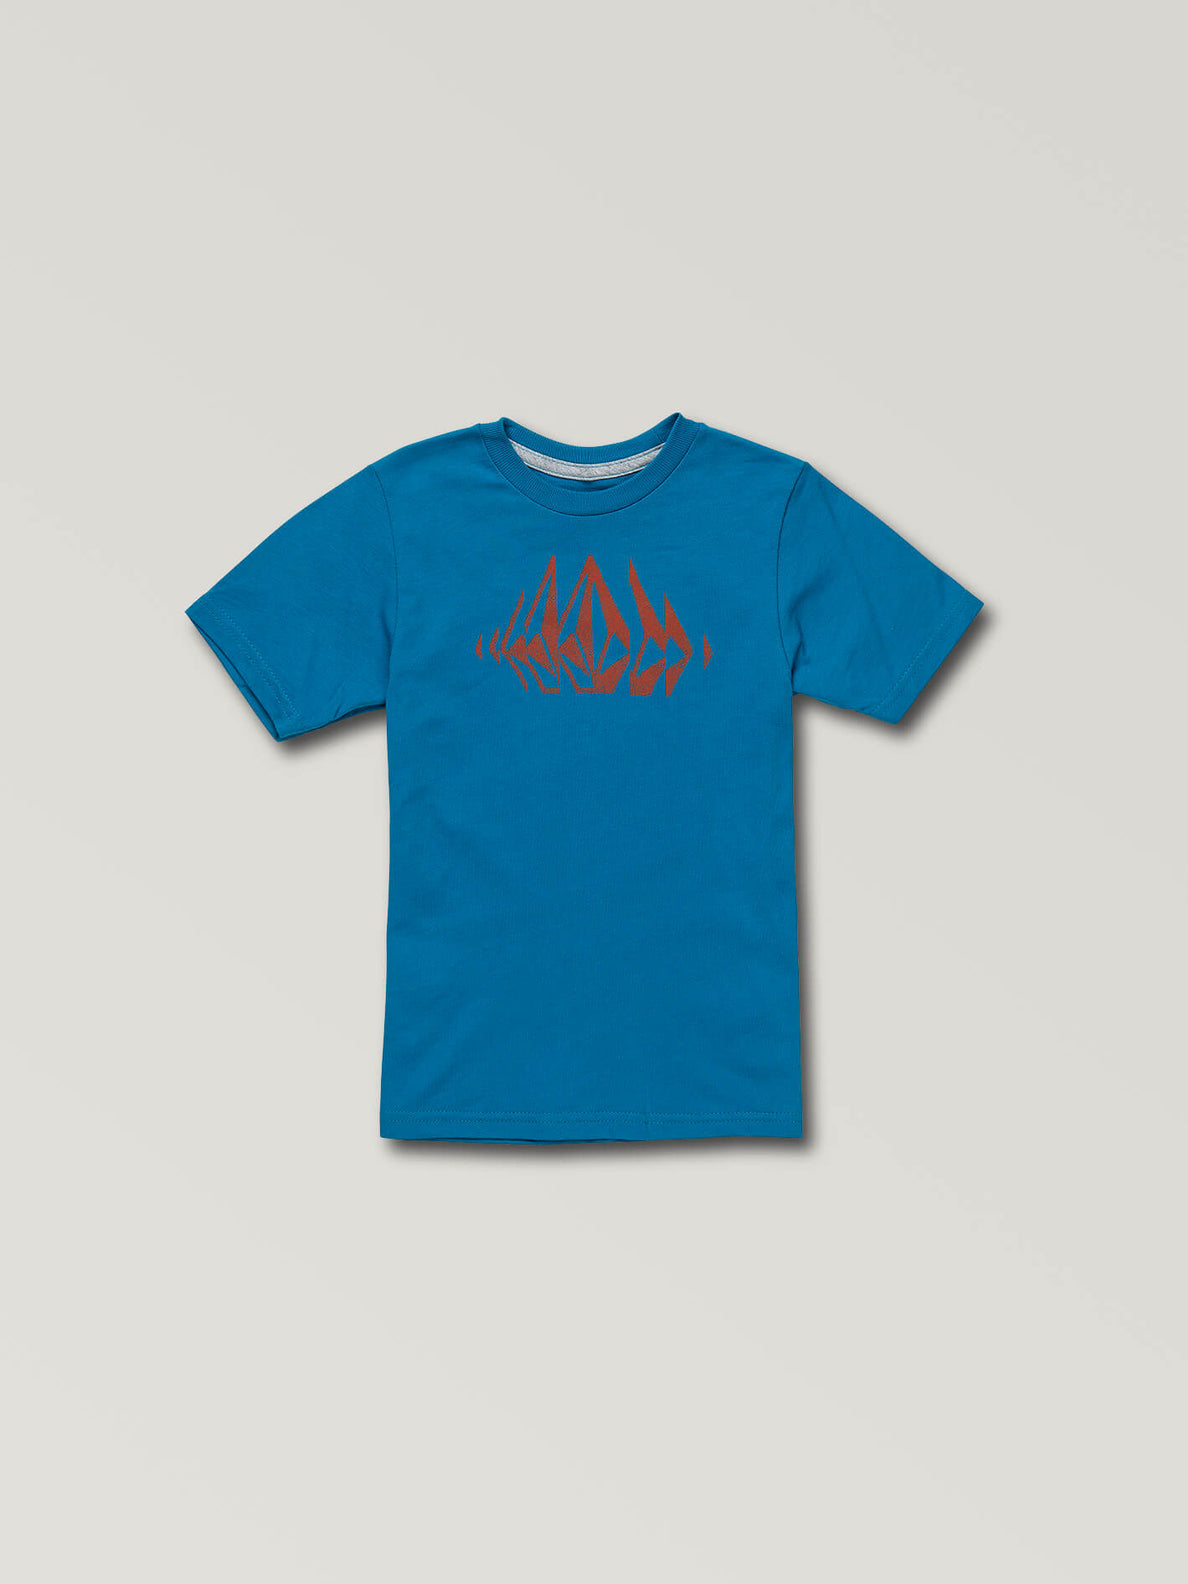 Little Boys Stone Sounds Short Sleeve Tee In Bright Blue, Front View